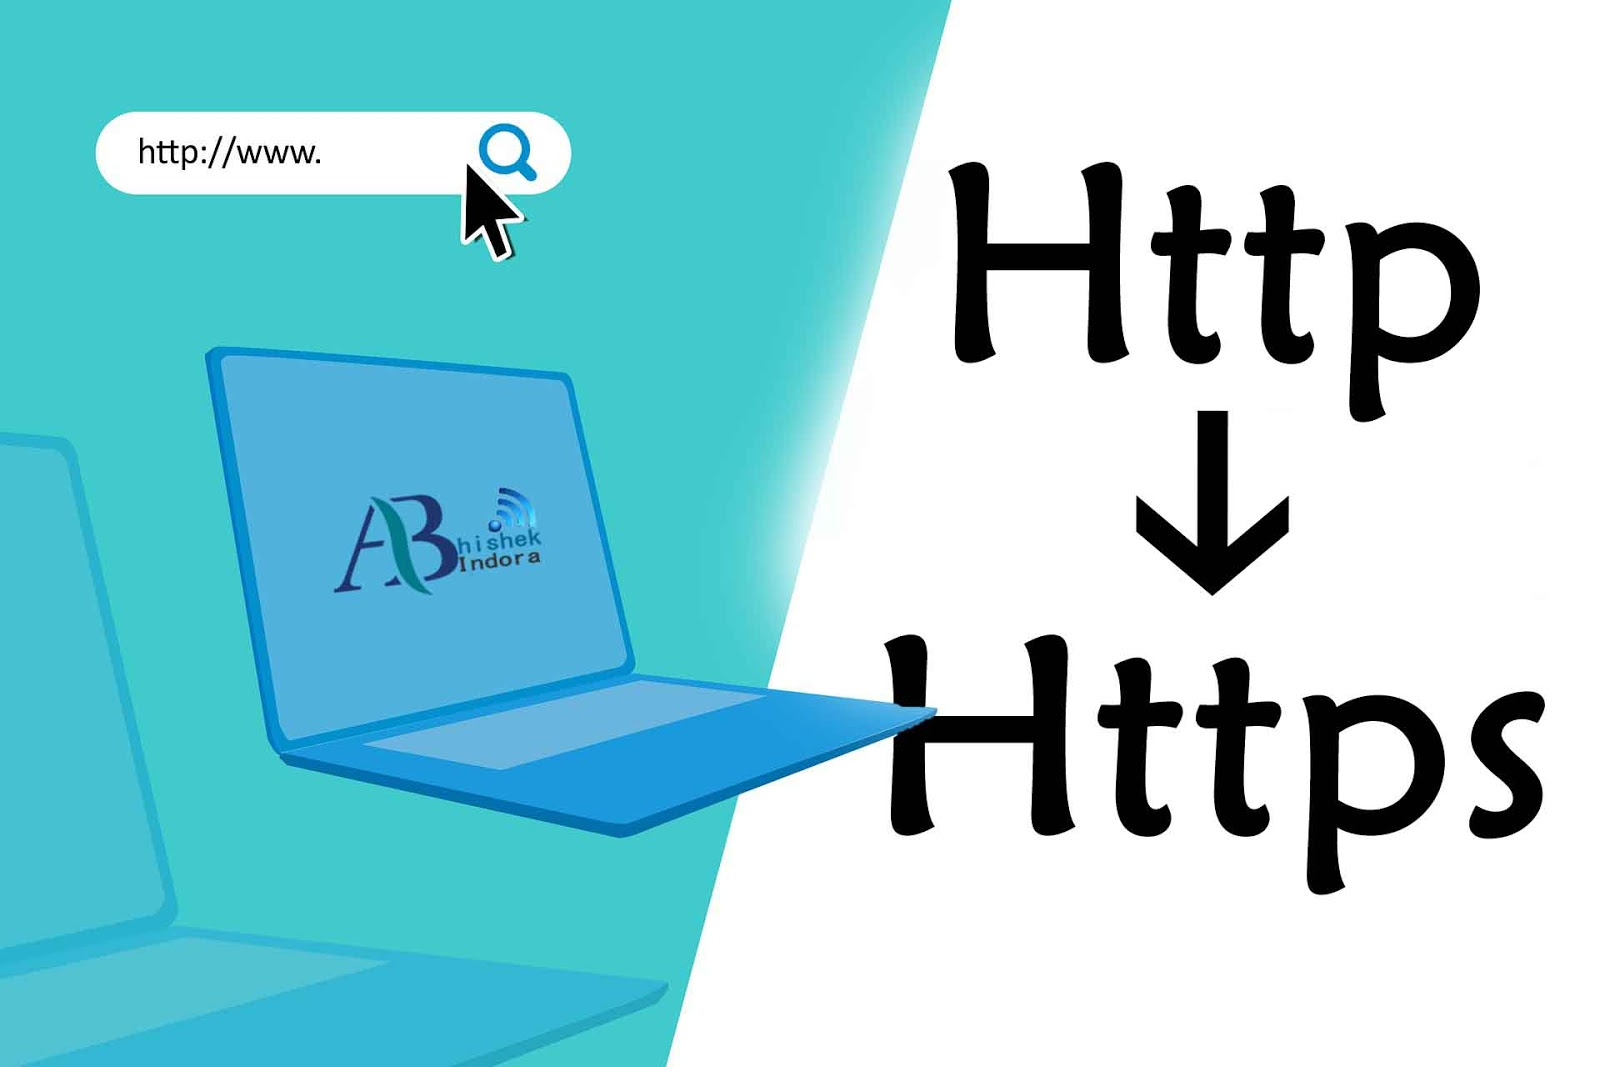 how to redirect domain to another domain builderall,how to redirect checker,301 redirect,php redirect,html redirect,htaccess redirect,javascript redirect,builderall how to make money,how to,how to make money online,how to make money with builderall, how to redirect http to https